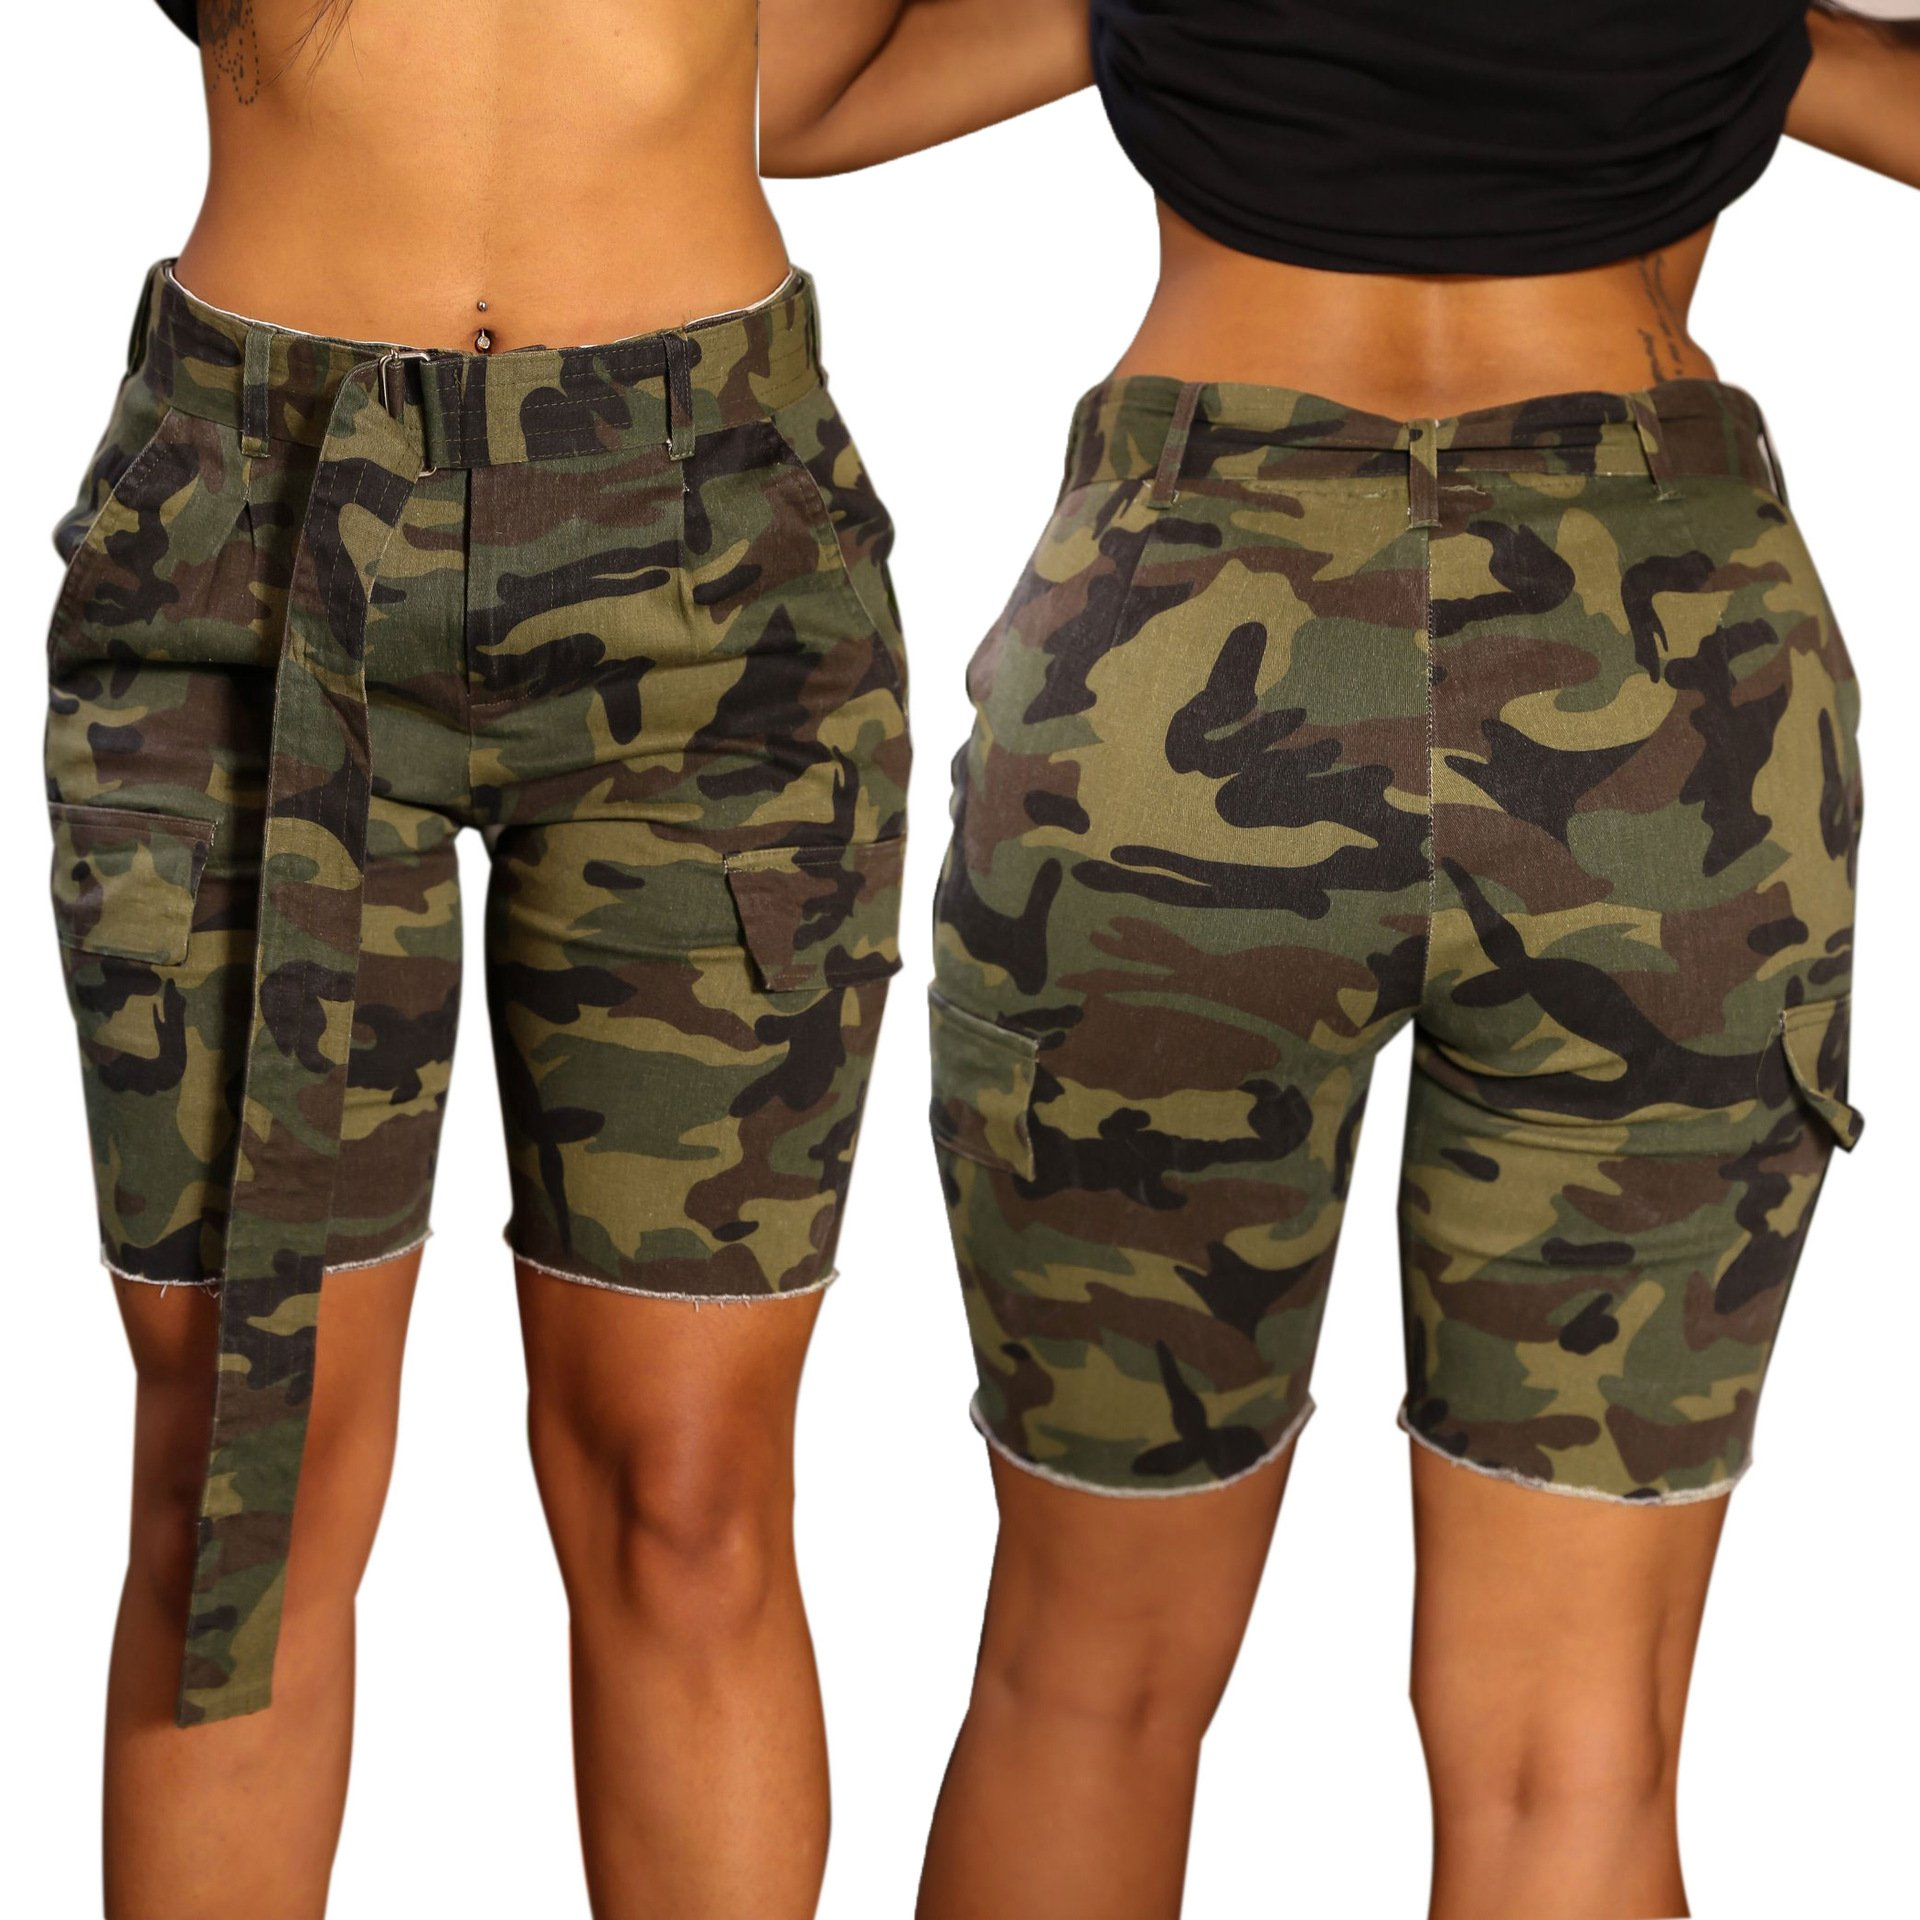 PINLI Camouflage Womens Denim Shorts Sexy Casual Summer Stretch Plus Size high Waisted Beach Jeans Shorts Capri (Camo L) by PINLI (Image #2)